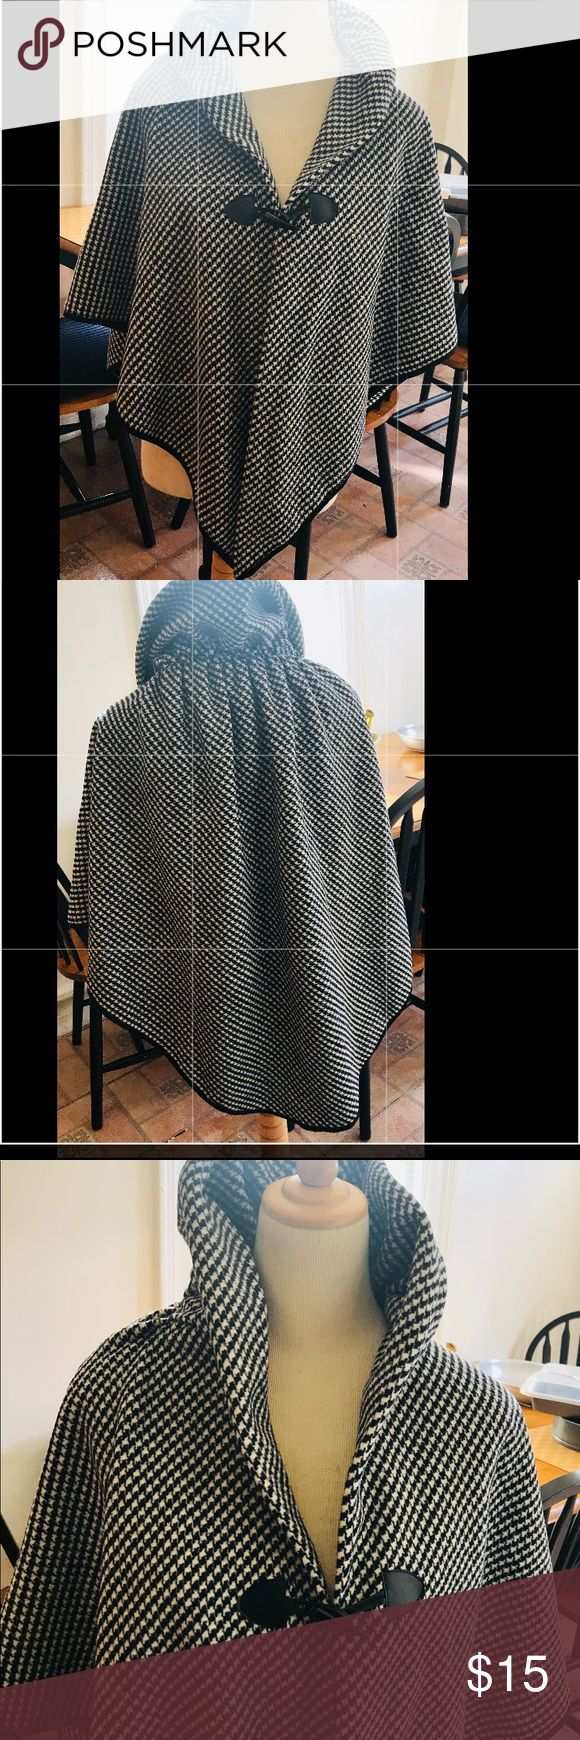 Black and white cape Beautiful 2 ply checkered cape. Brand new. No tags. Bought it from a vendor that handmade it. 100% acrylic. Not sure what size it is. I would say would fit XS though a M. Jackets & Coats Capes